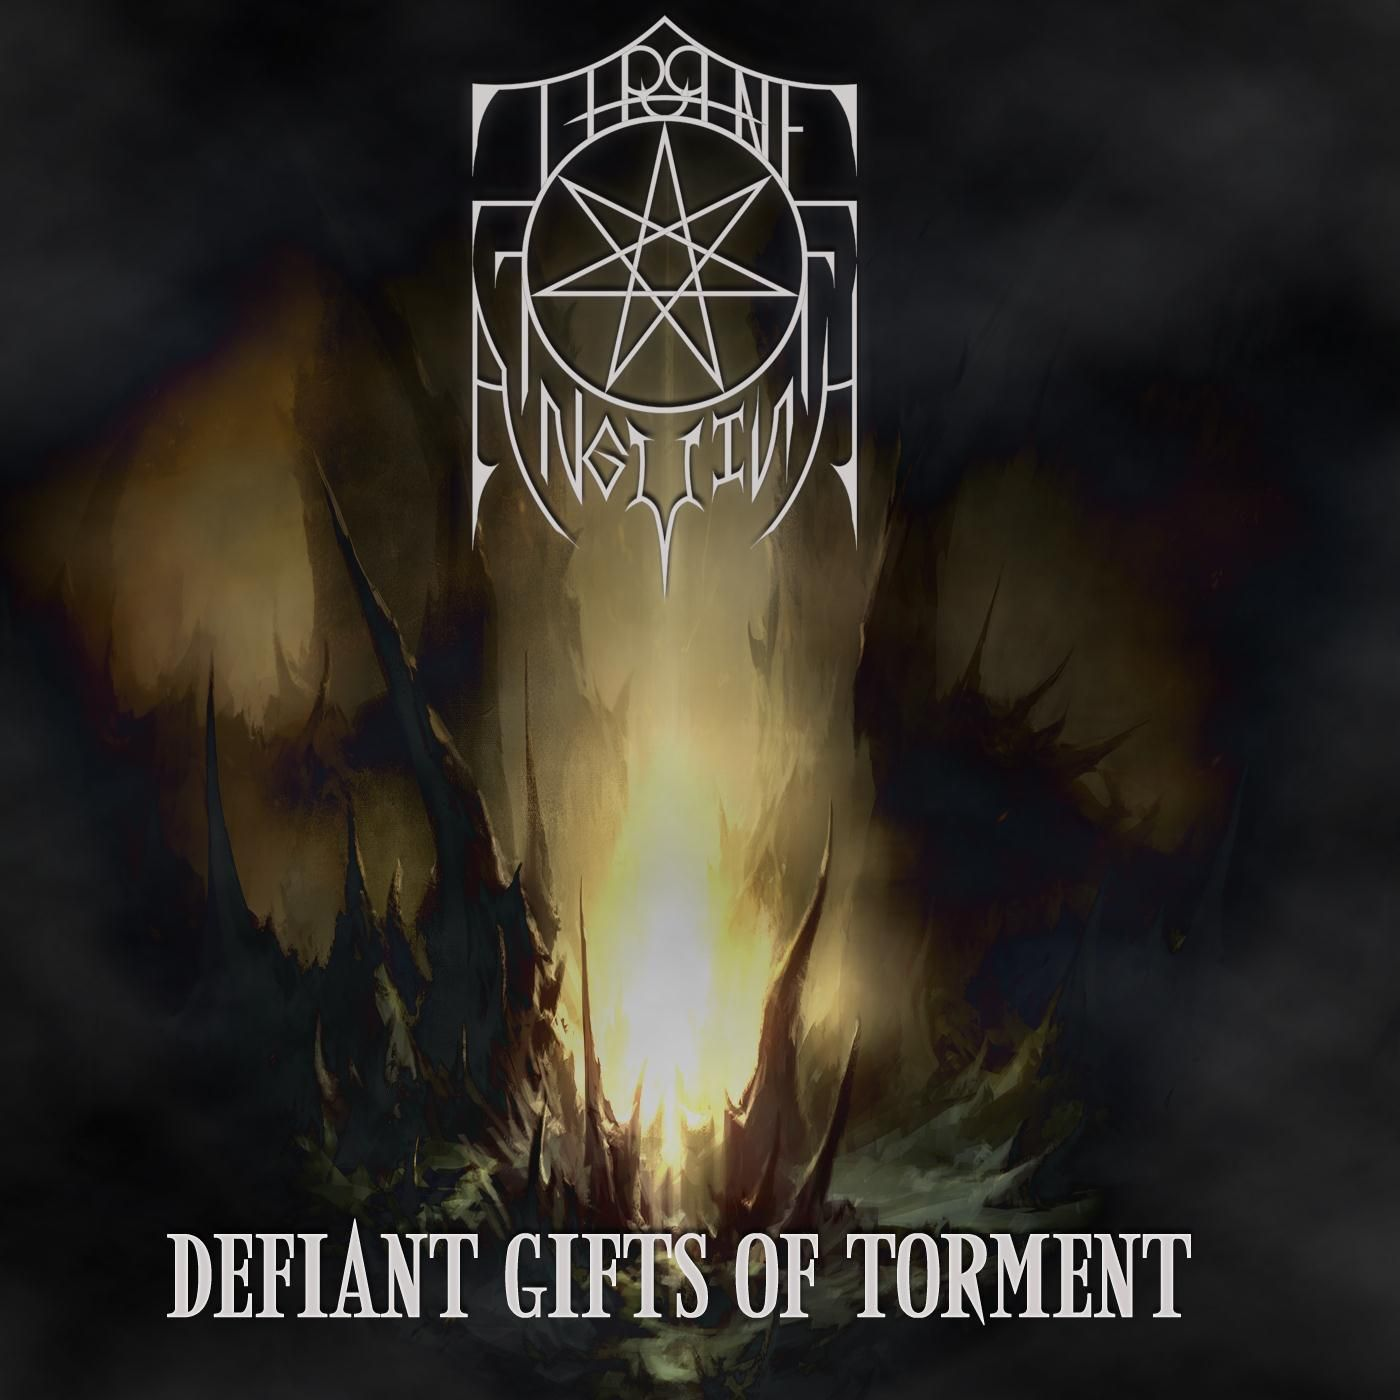 Defiant Gifts of Torment